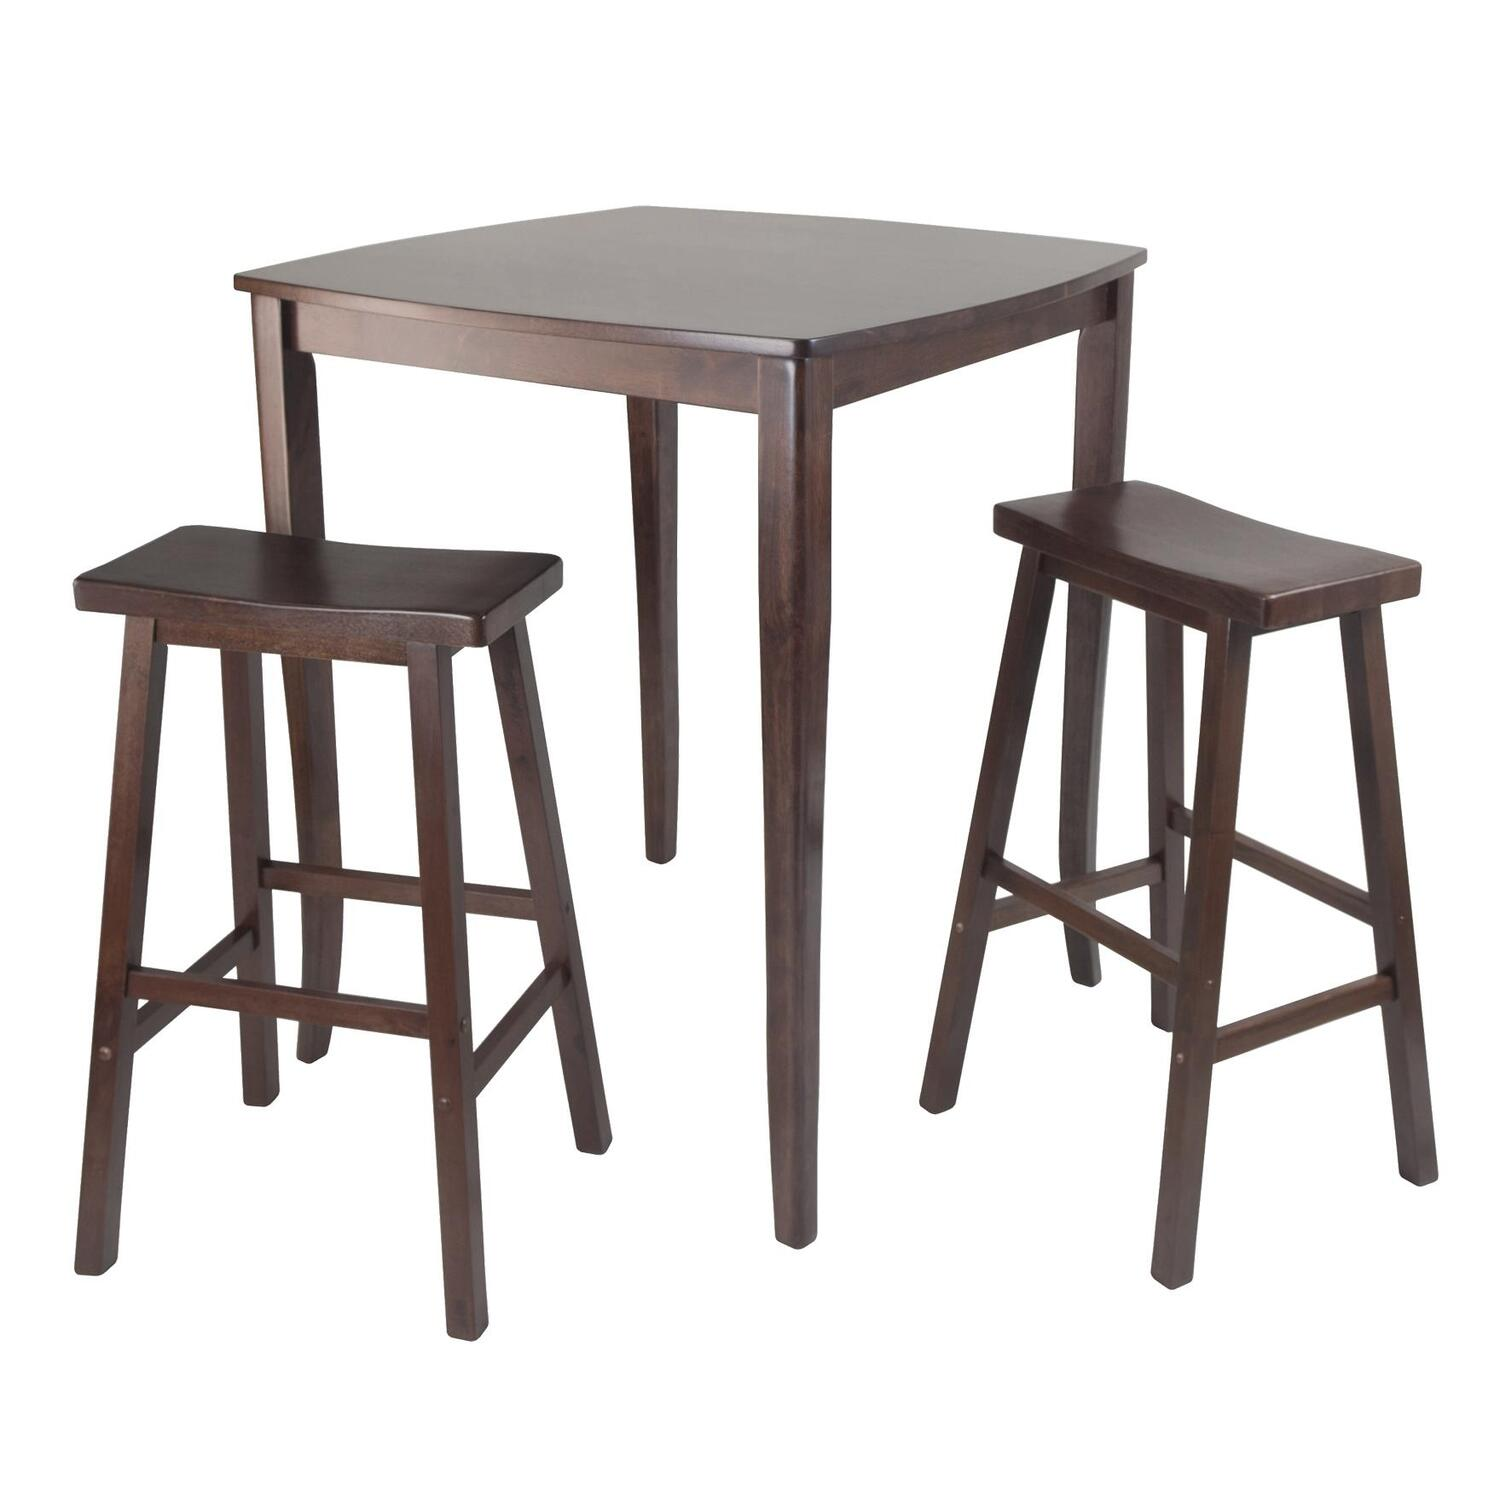 Outstanding Winsome Wood 3Pc Inglewood High Pub Dining Table With Saddle Stool Lamtechconsult Wood Chair Design Ideas Lamtechconsultcom